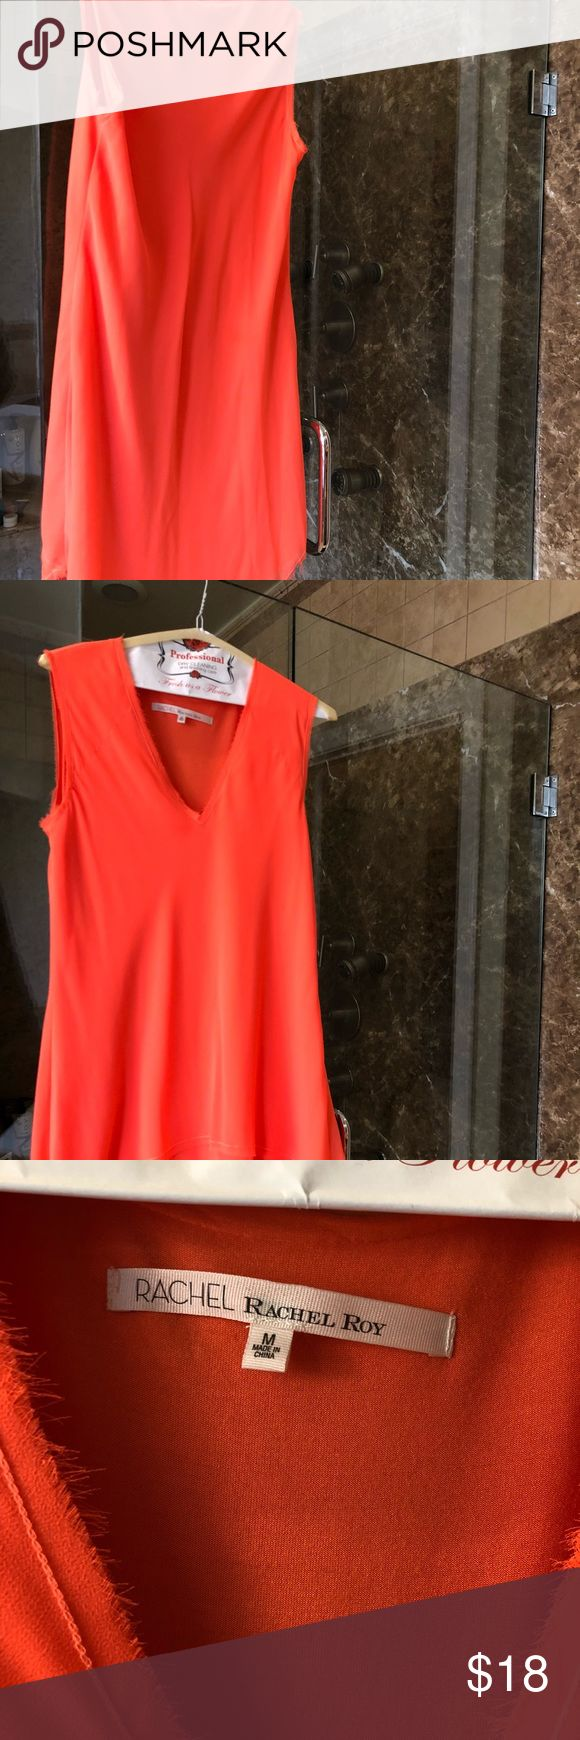 Rachel Roy Orange/Tangerine Dress Size M Excellent Used Condition, light and comfortable dress. RACHEL Rachel Roy Dresses Asymmetrical